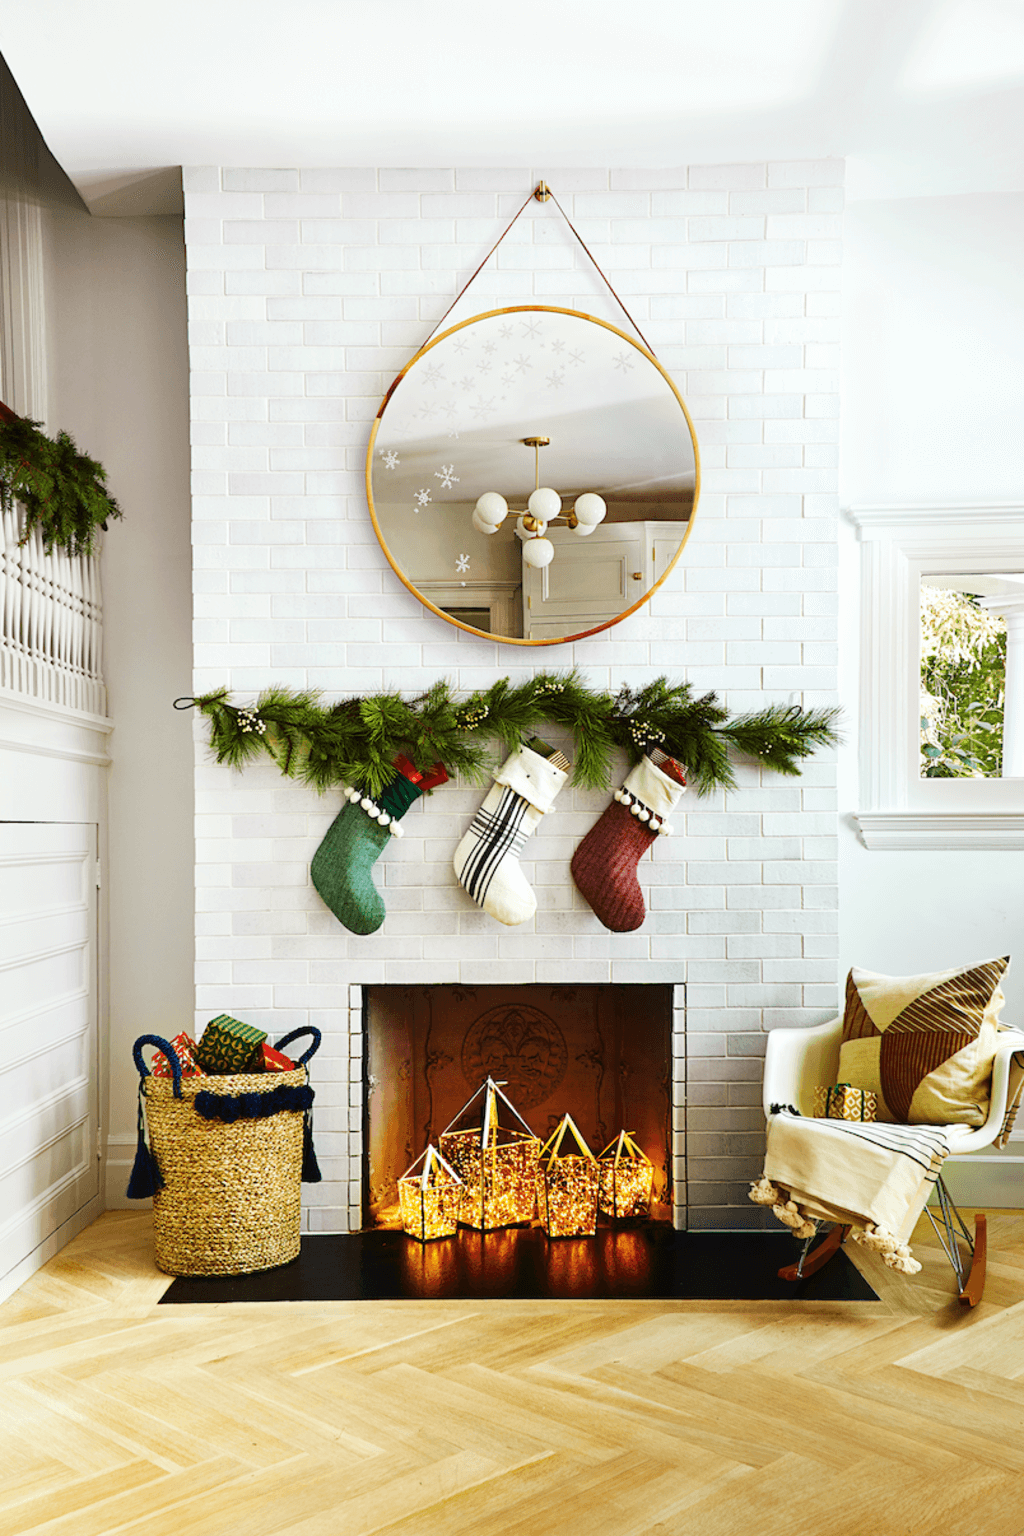 living-room-decorations 70+ Impressive Christmas Decorations to Do Yourself in 2021